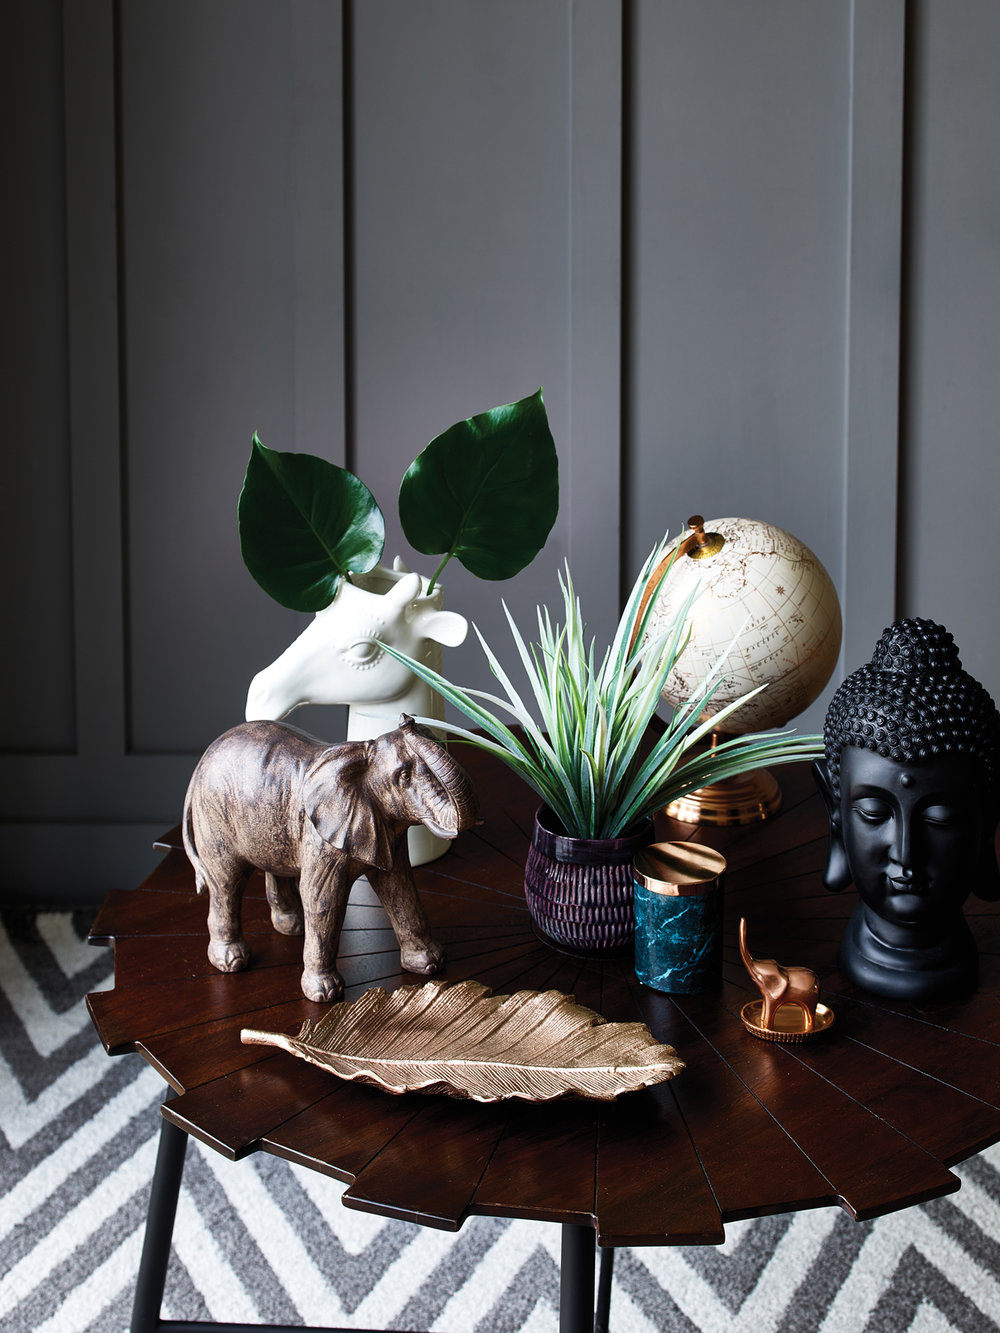 Elephant ornament - £15, Giraffe vase - £12, Copper globe - £15, Purple potted grass - £8, Marble print candle - £4, Buddha ornament - £12, Copper leaf plate - £12, Starburst coffee table - £79, Homemaker grey chevron rug - £60.